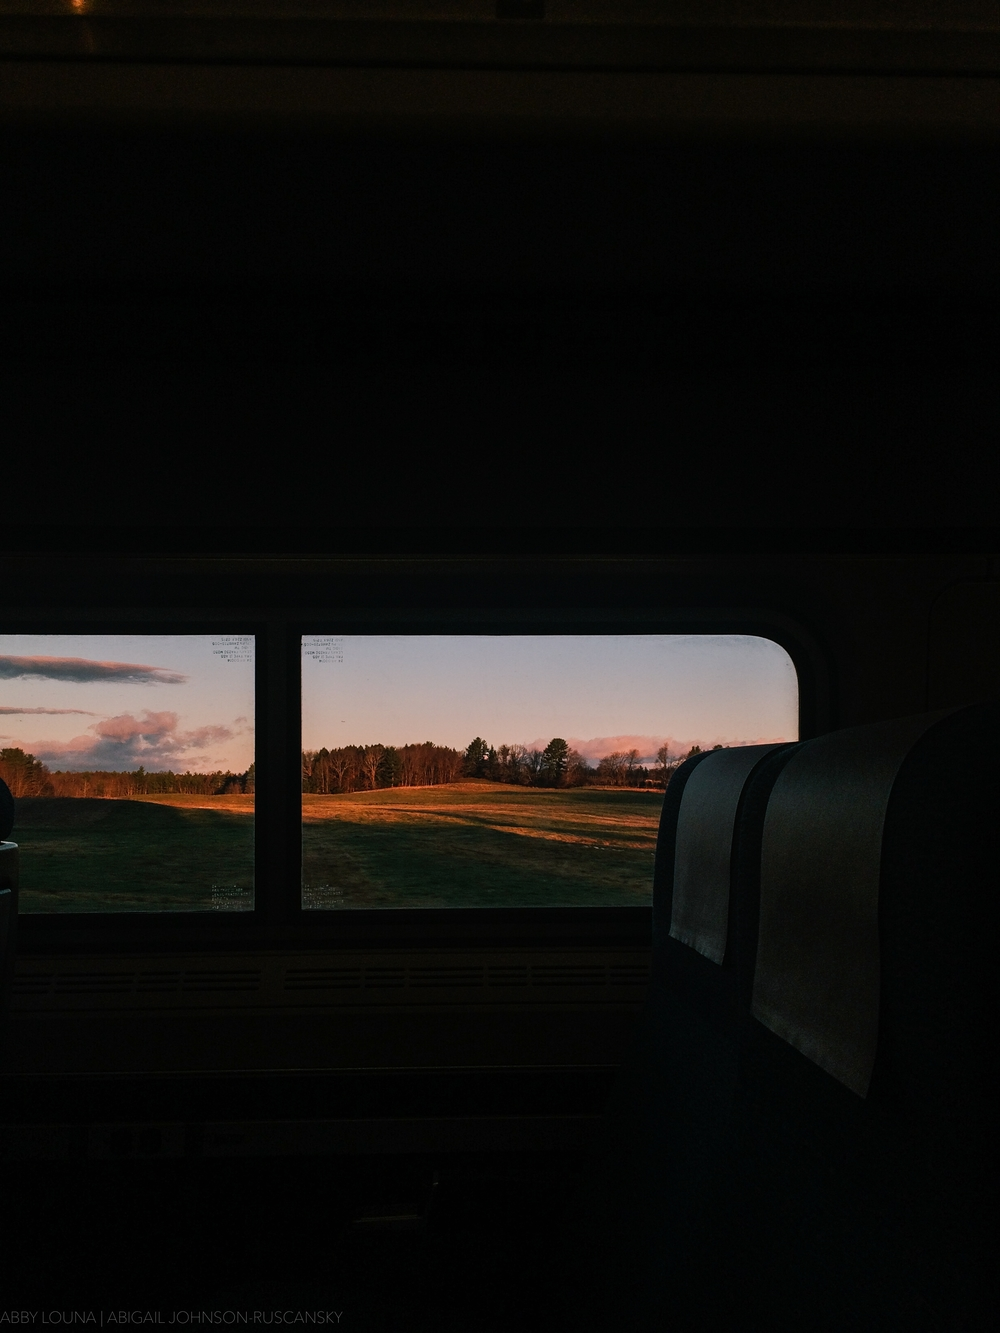 Woke up at 4:30 AM to catch the 6AM train to Boston. It was amazing to watch the sun rise from the train.